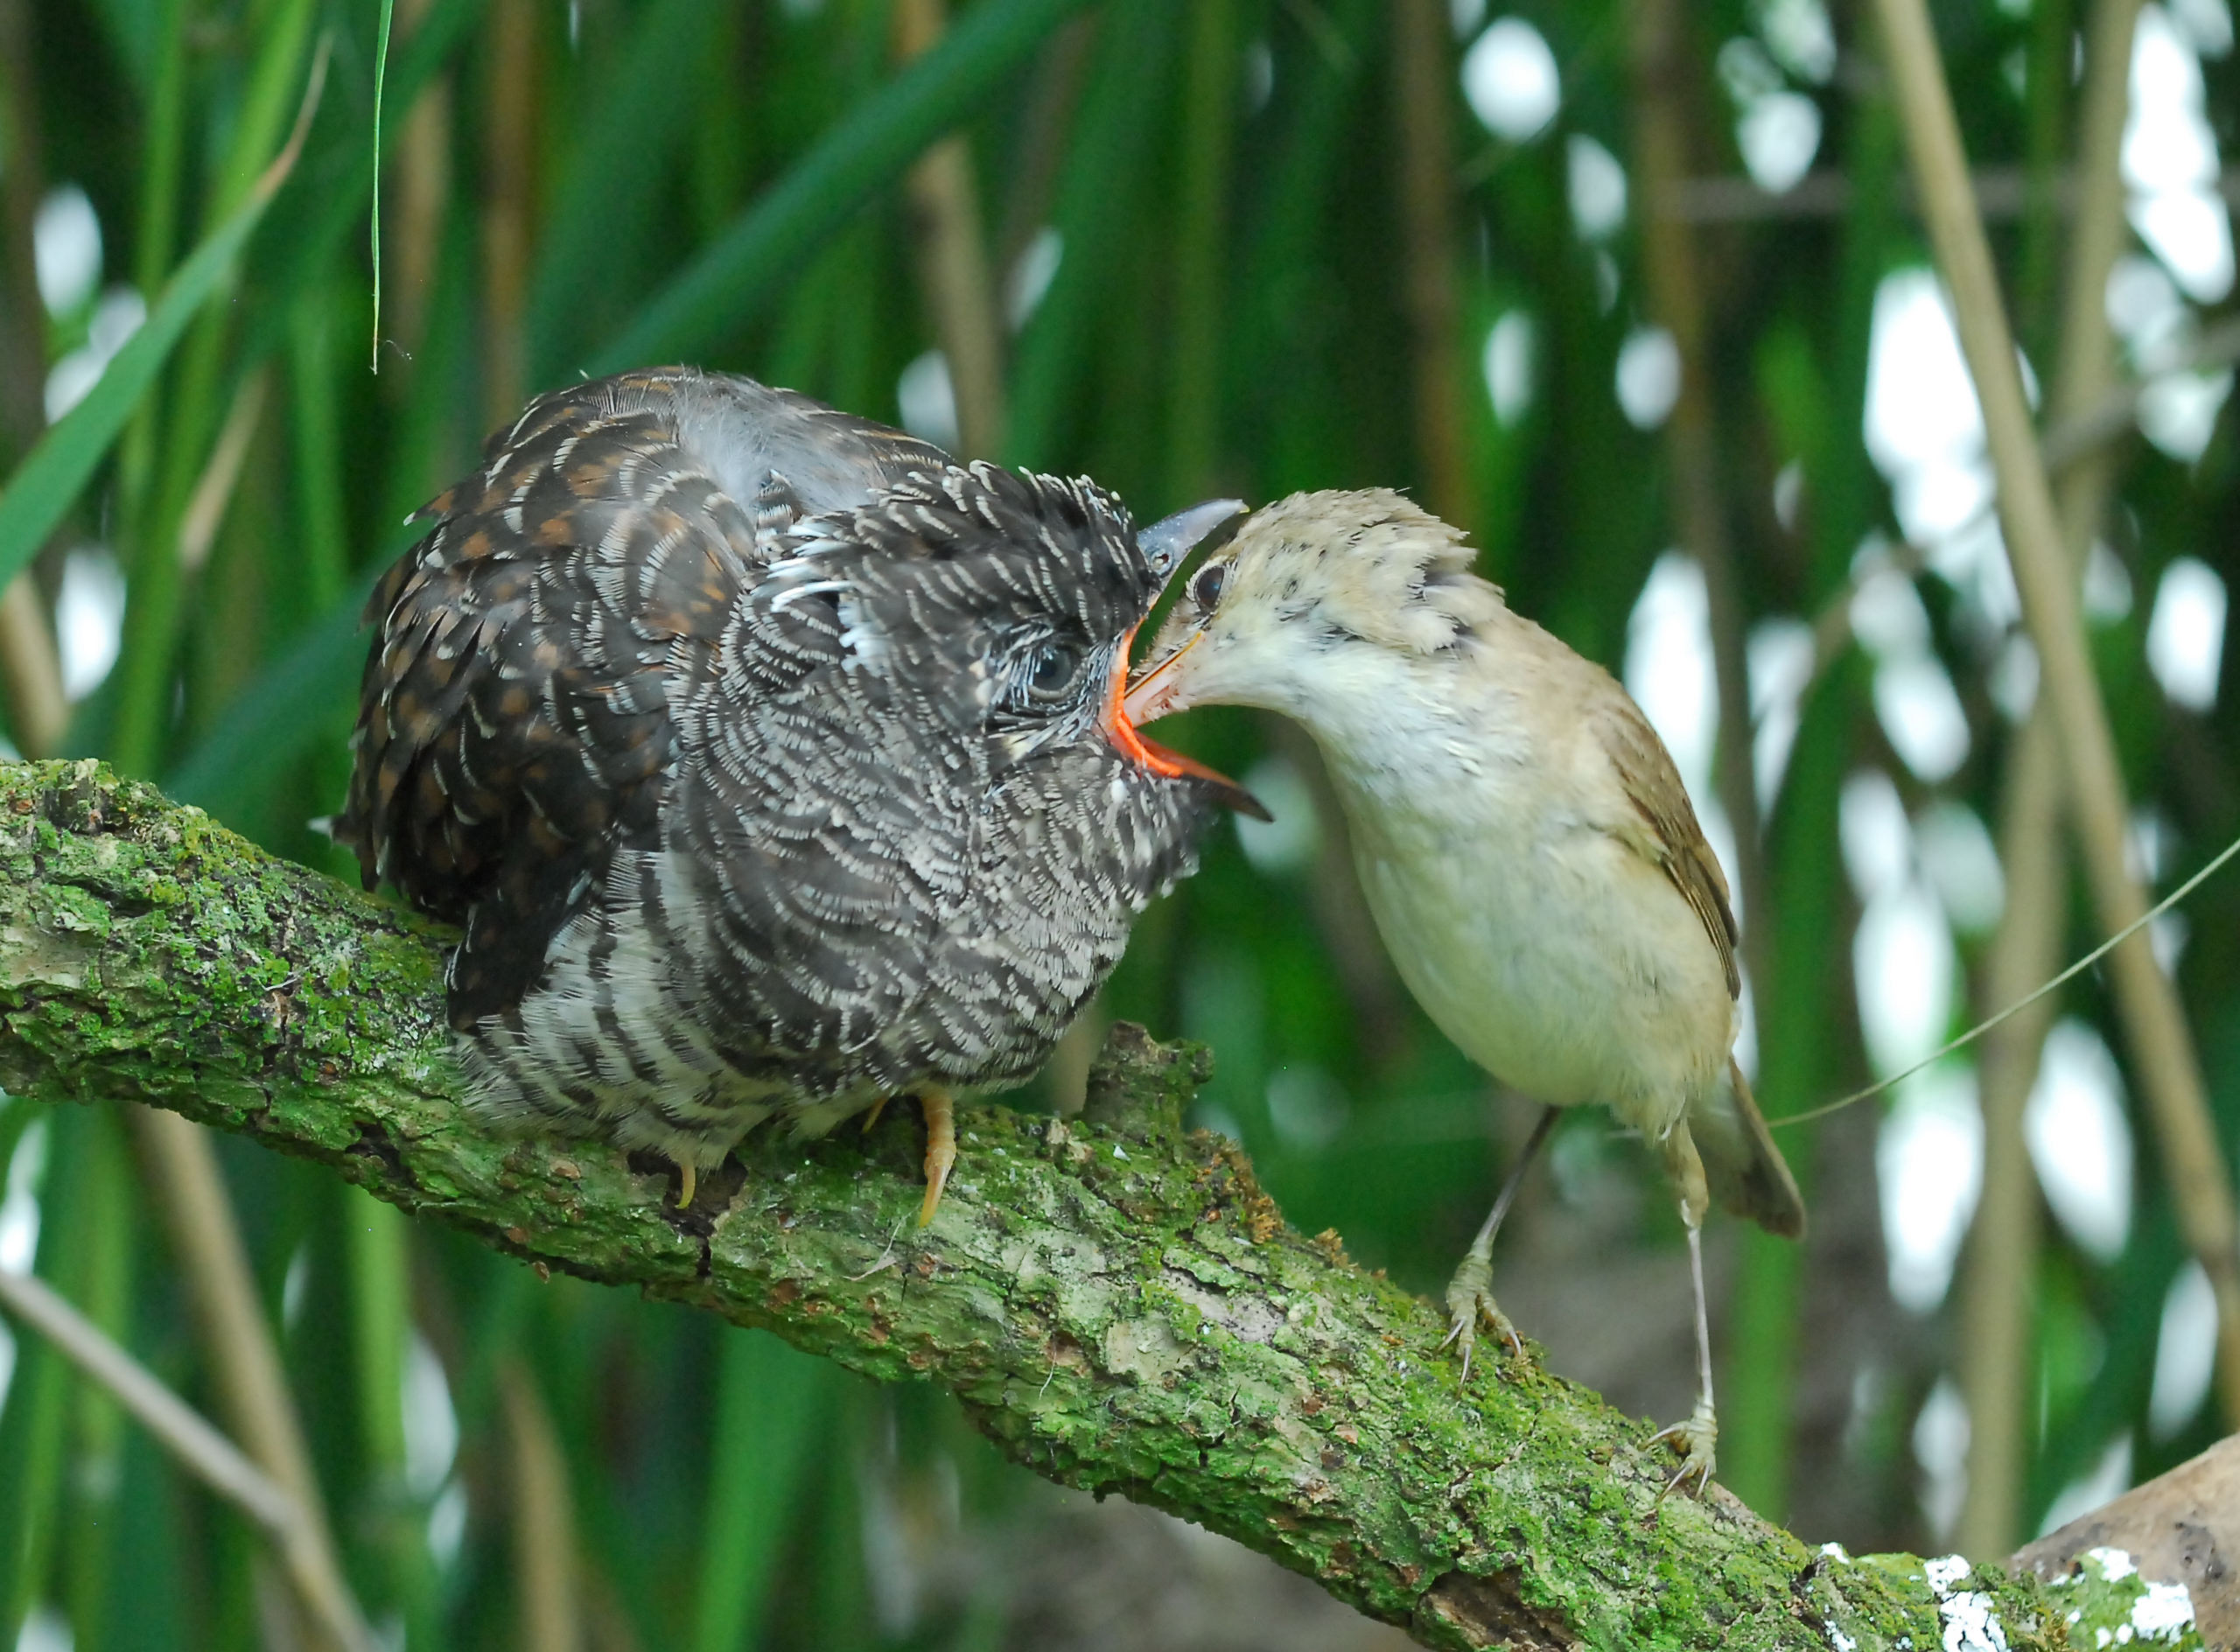 Cuckoo chick fed by adult reed warbler (c) Paul Stevens